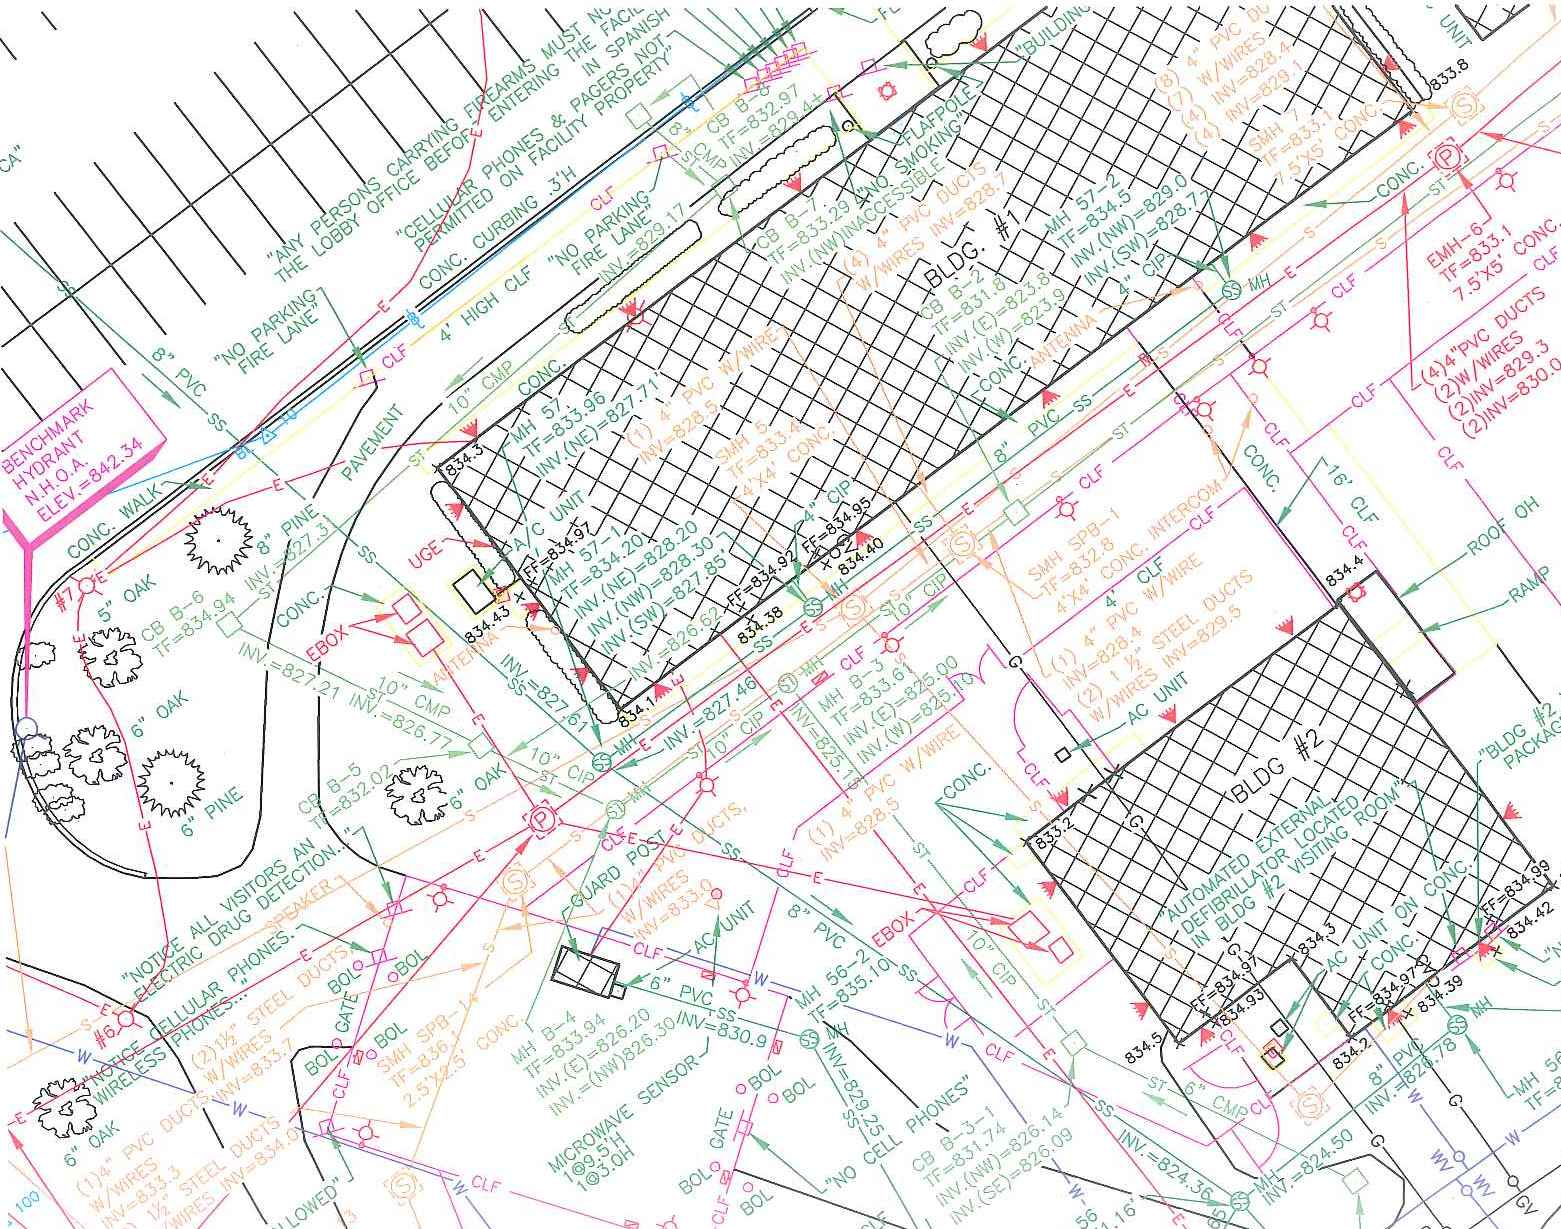 topographic and utility survey